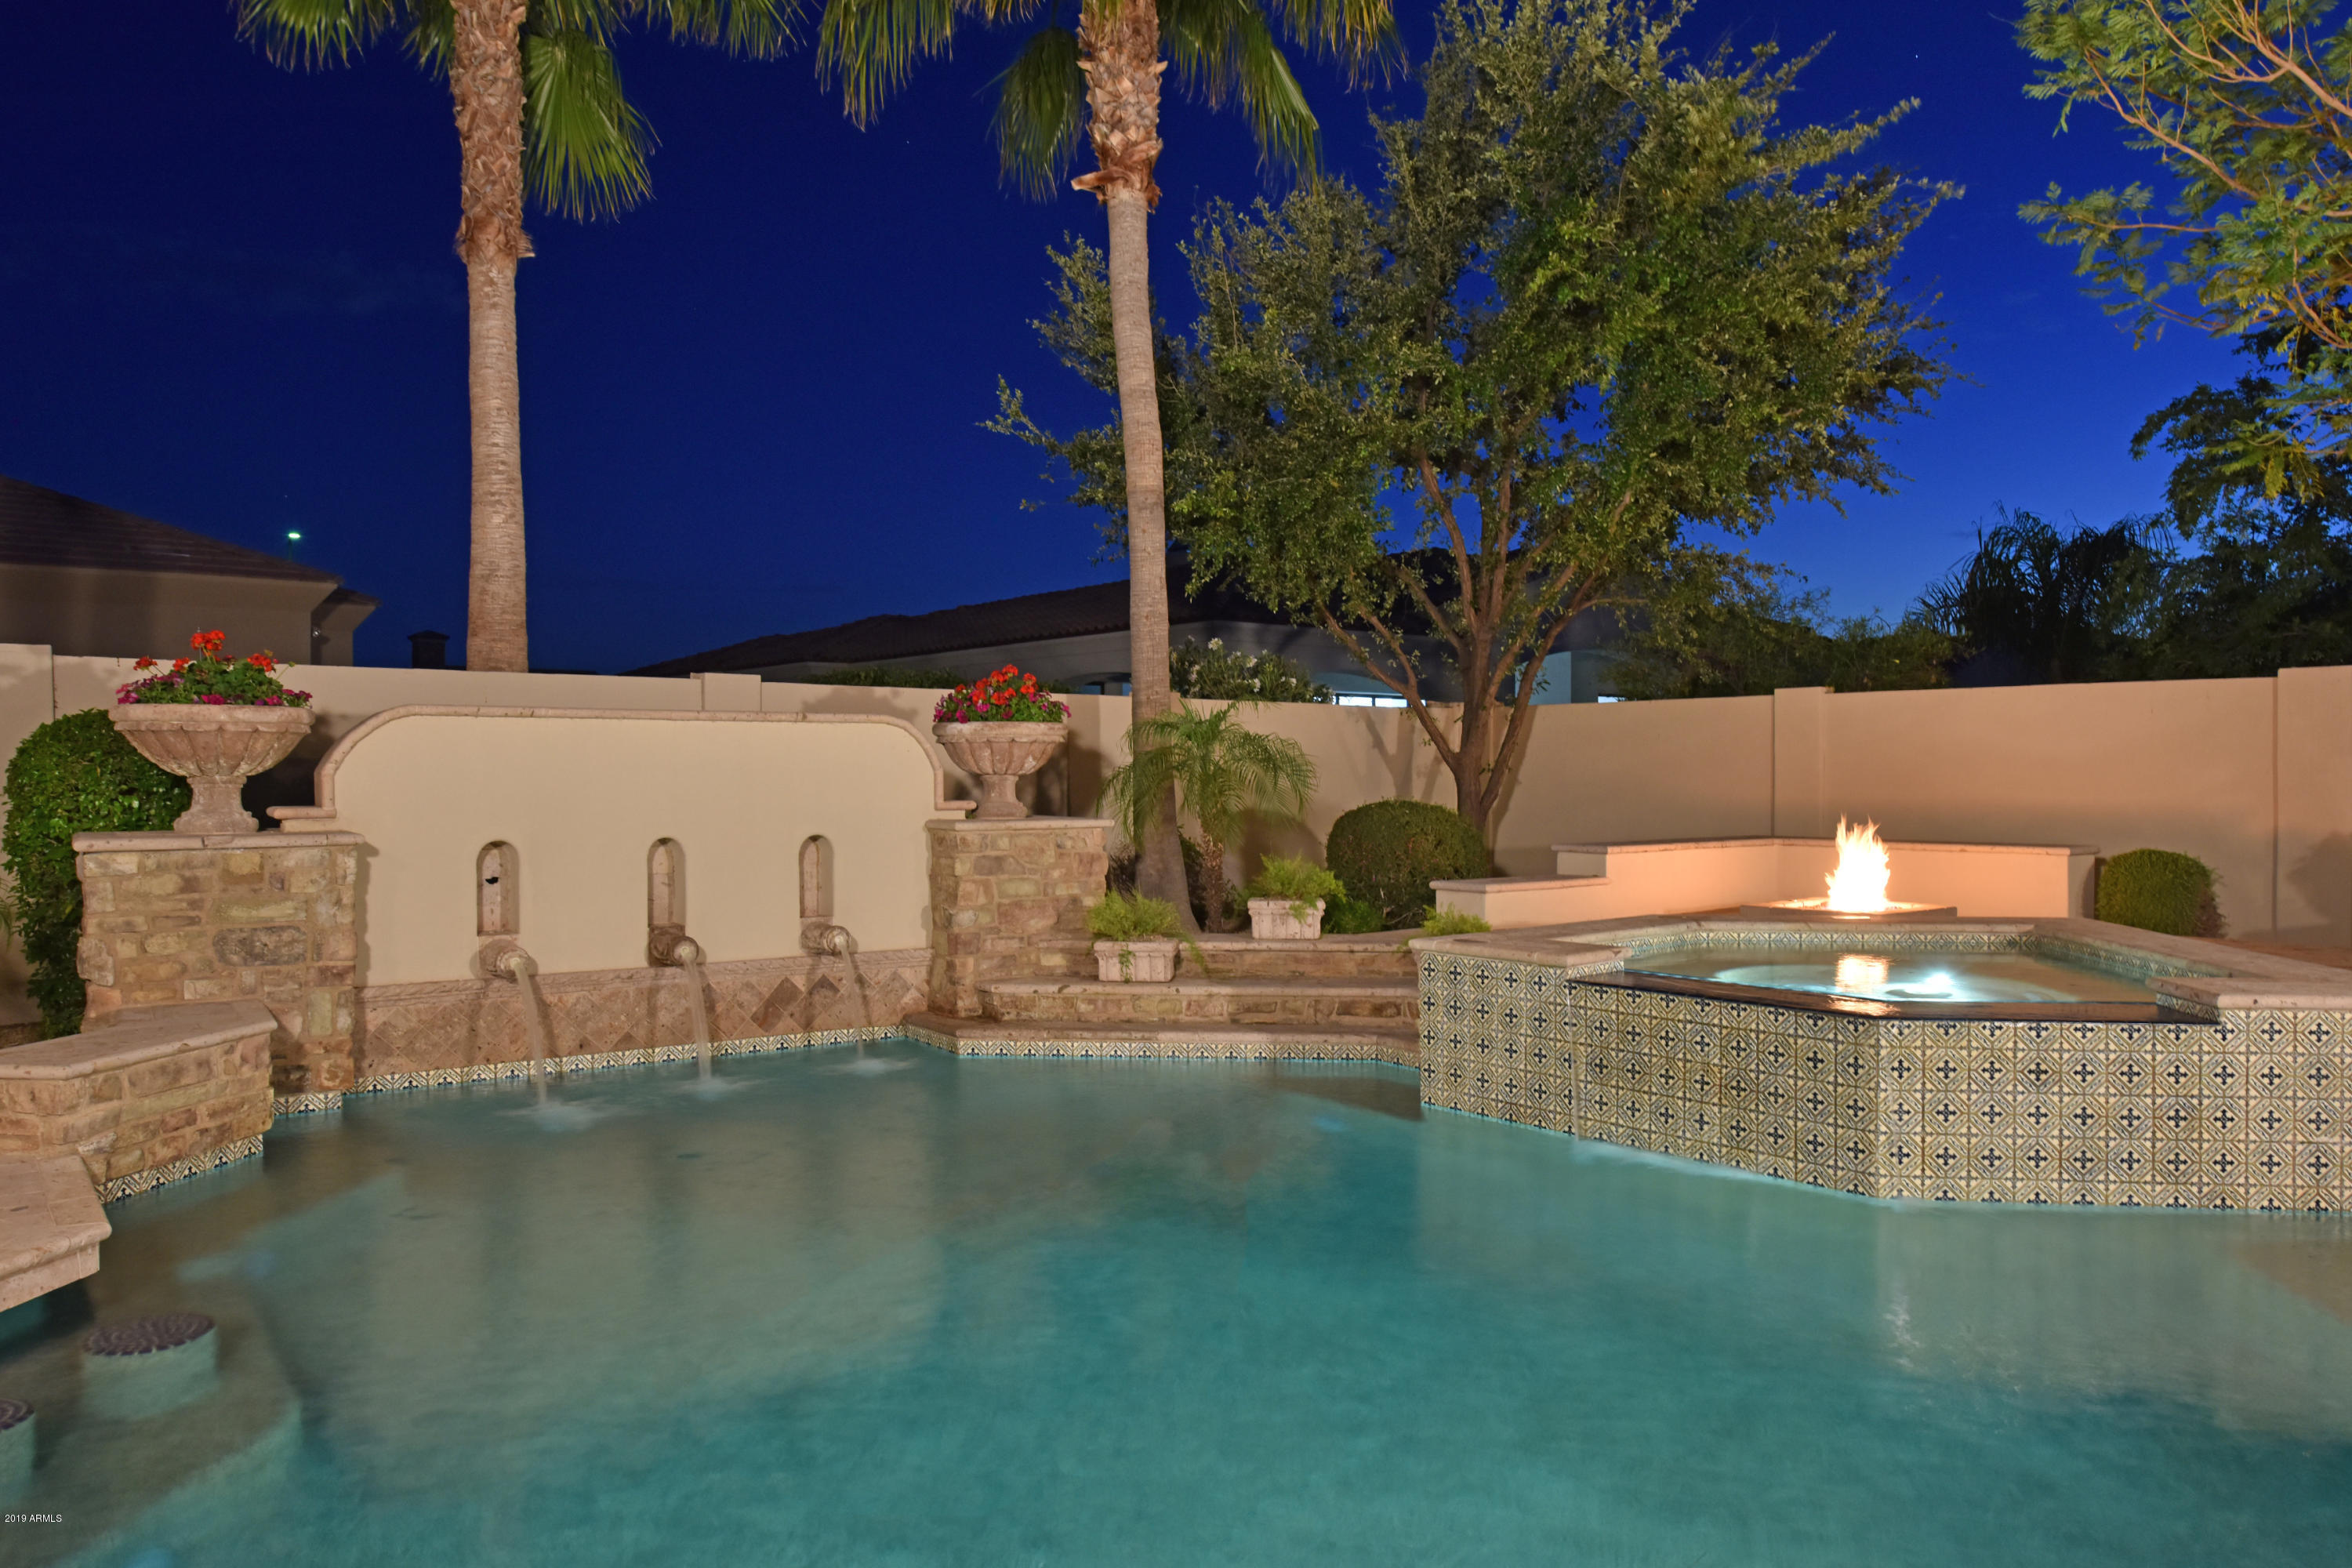 MLS 5918875 4403 E LIBRA Place, Chandler, AZ 85249 RV Parking